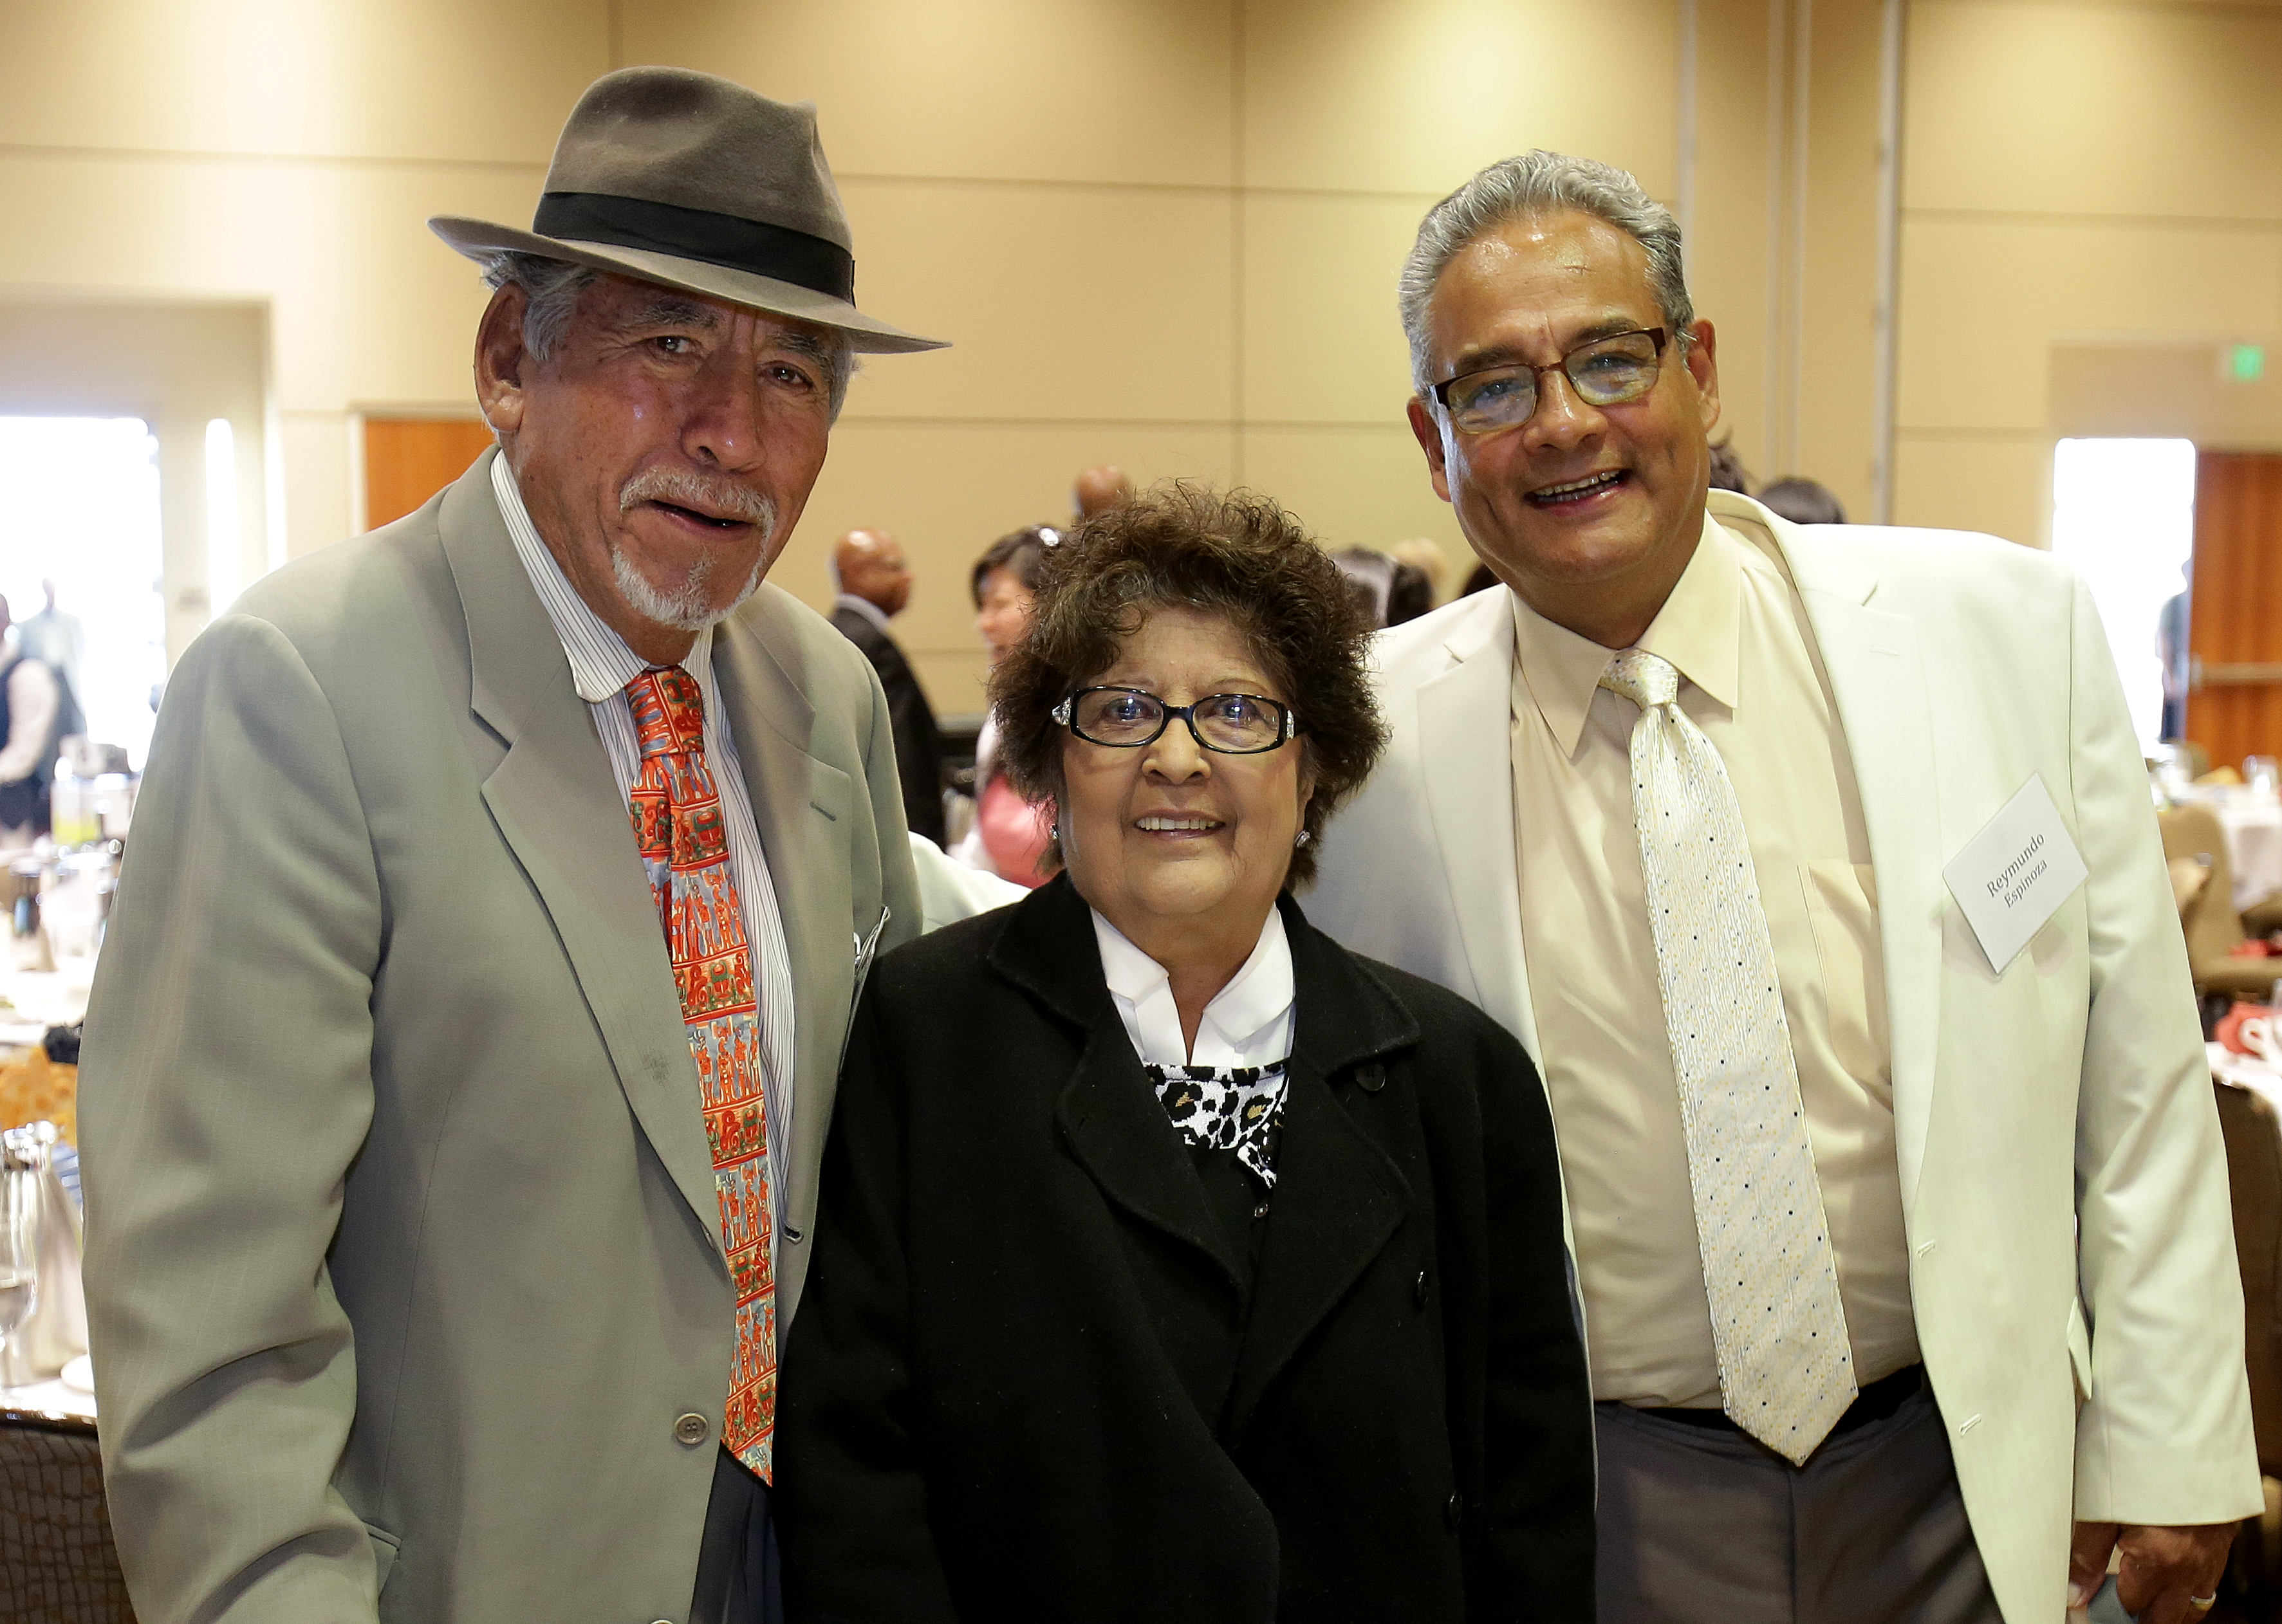 30th Annual PACT Luncheon